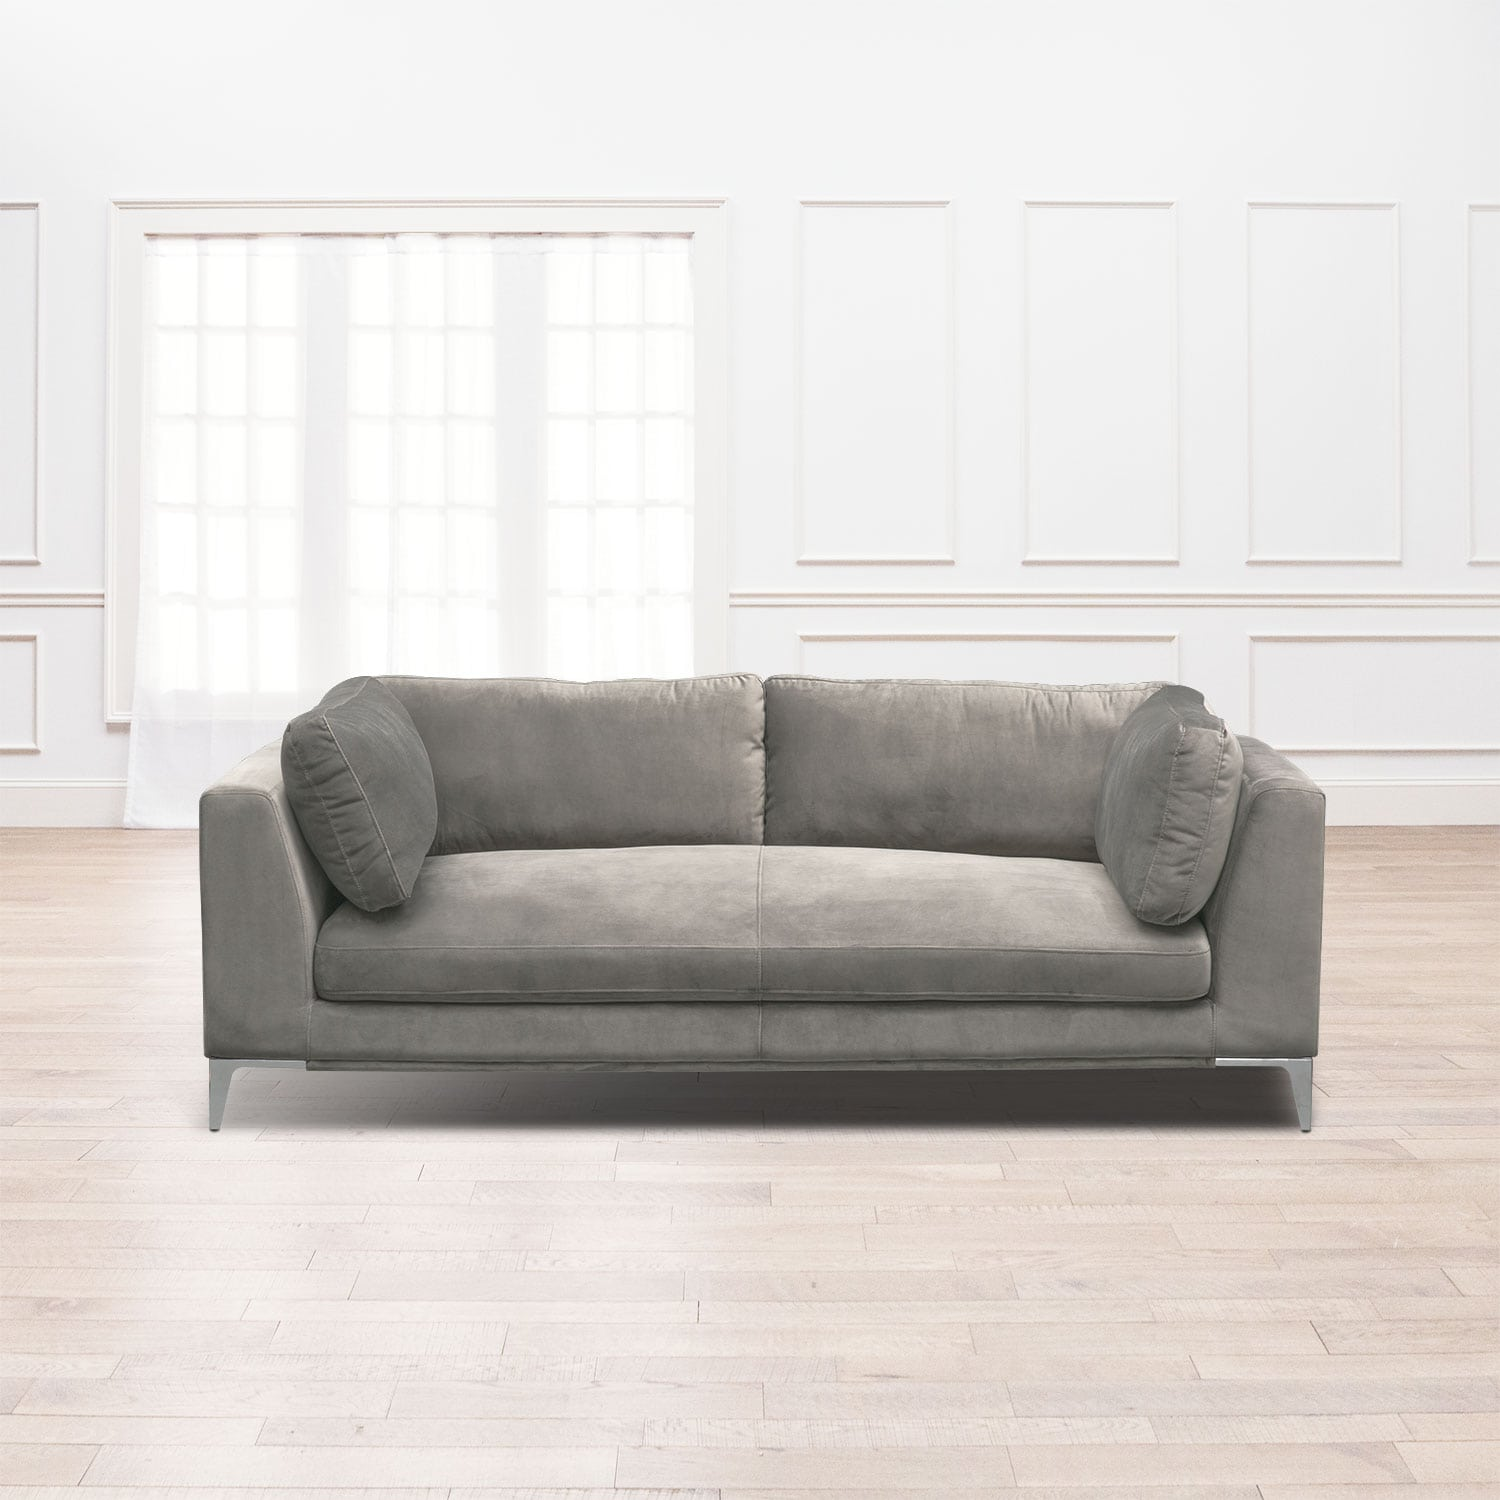 Aaron sofa flannel american signature furniture for 8 foot couch